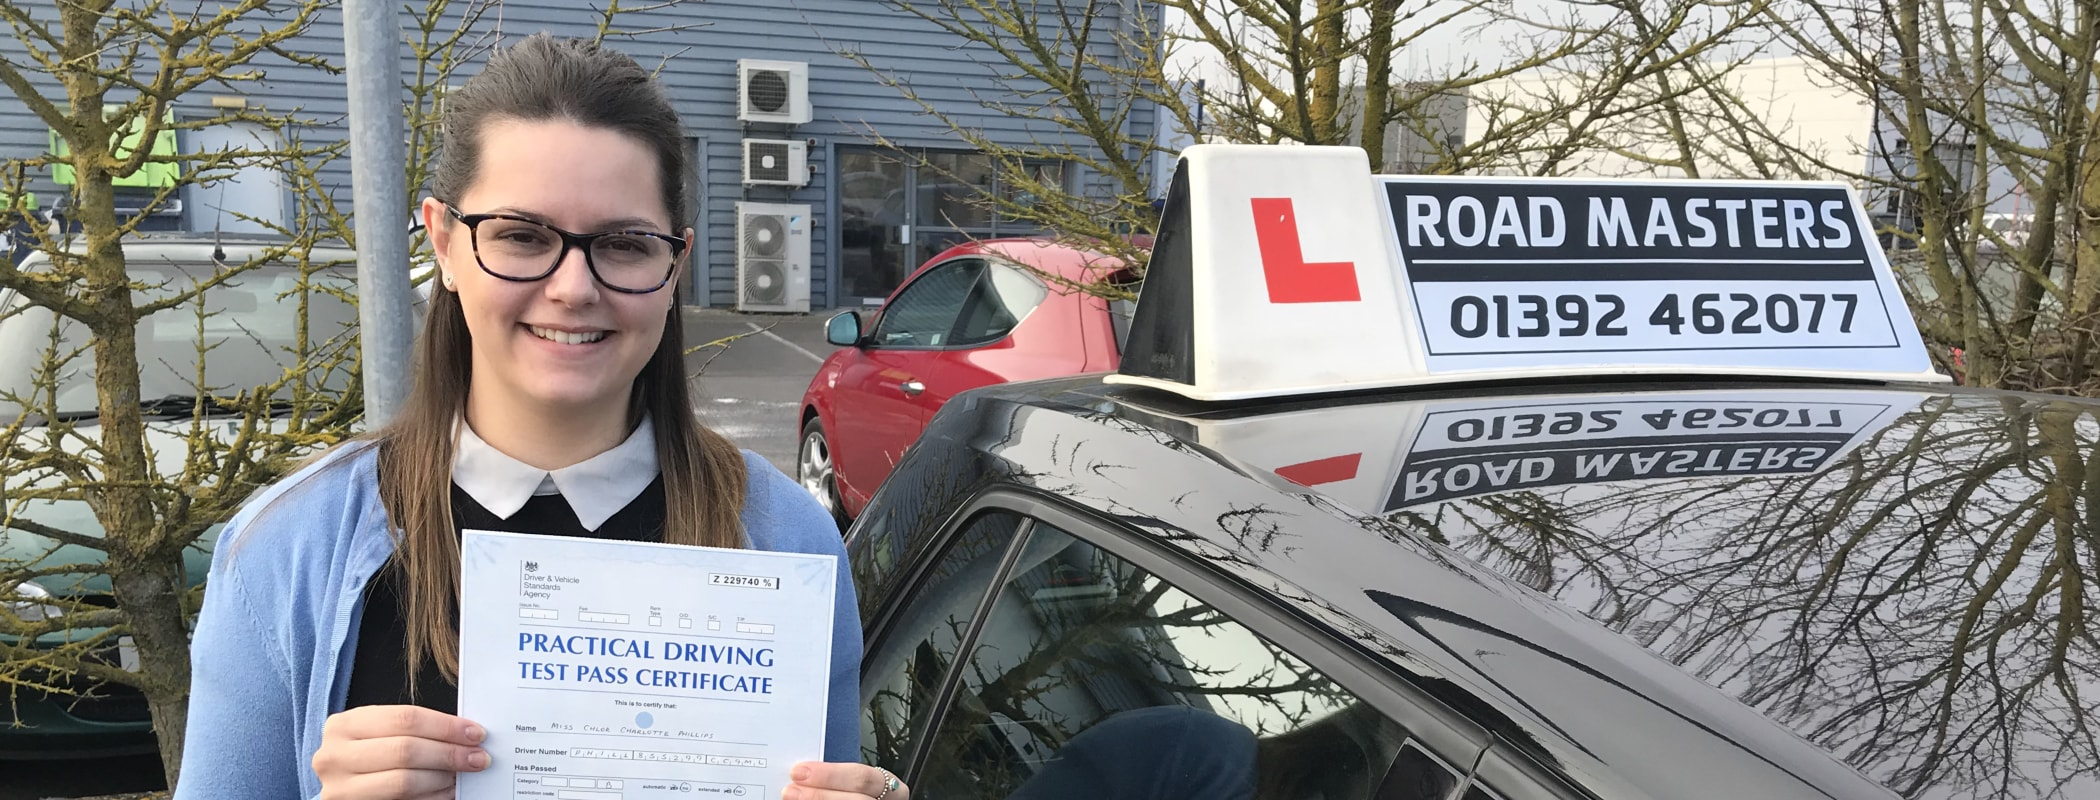 Driving lessons Newton Abbot from £27 /hr*